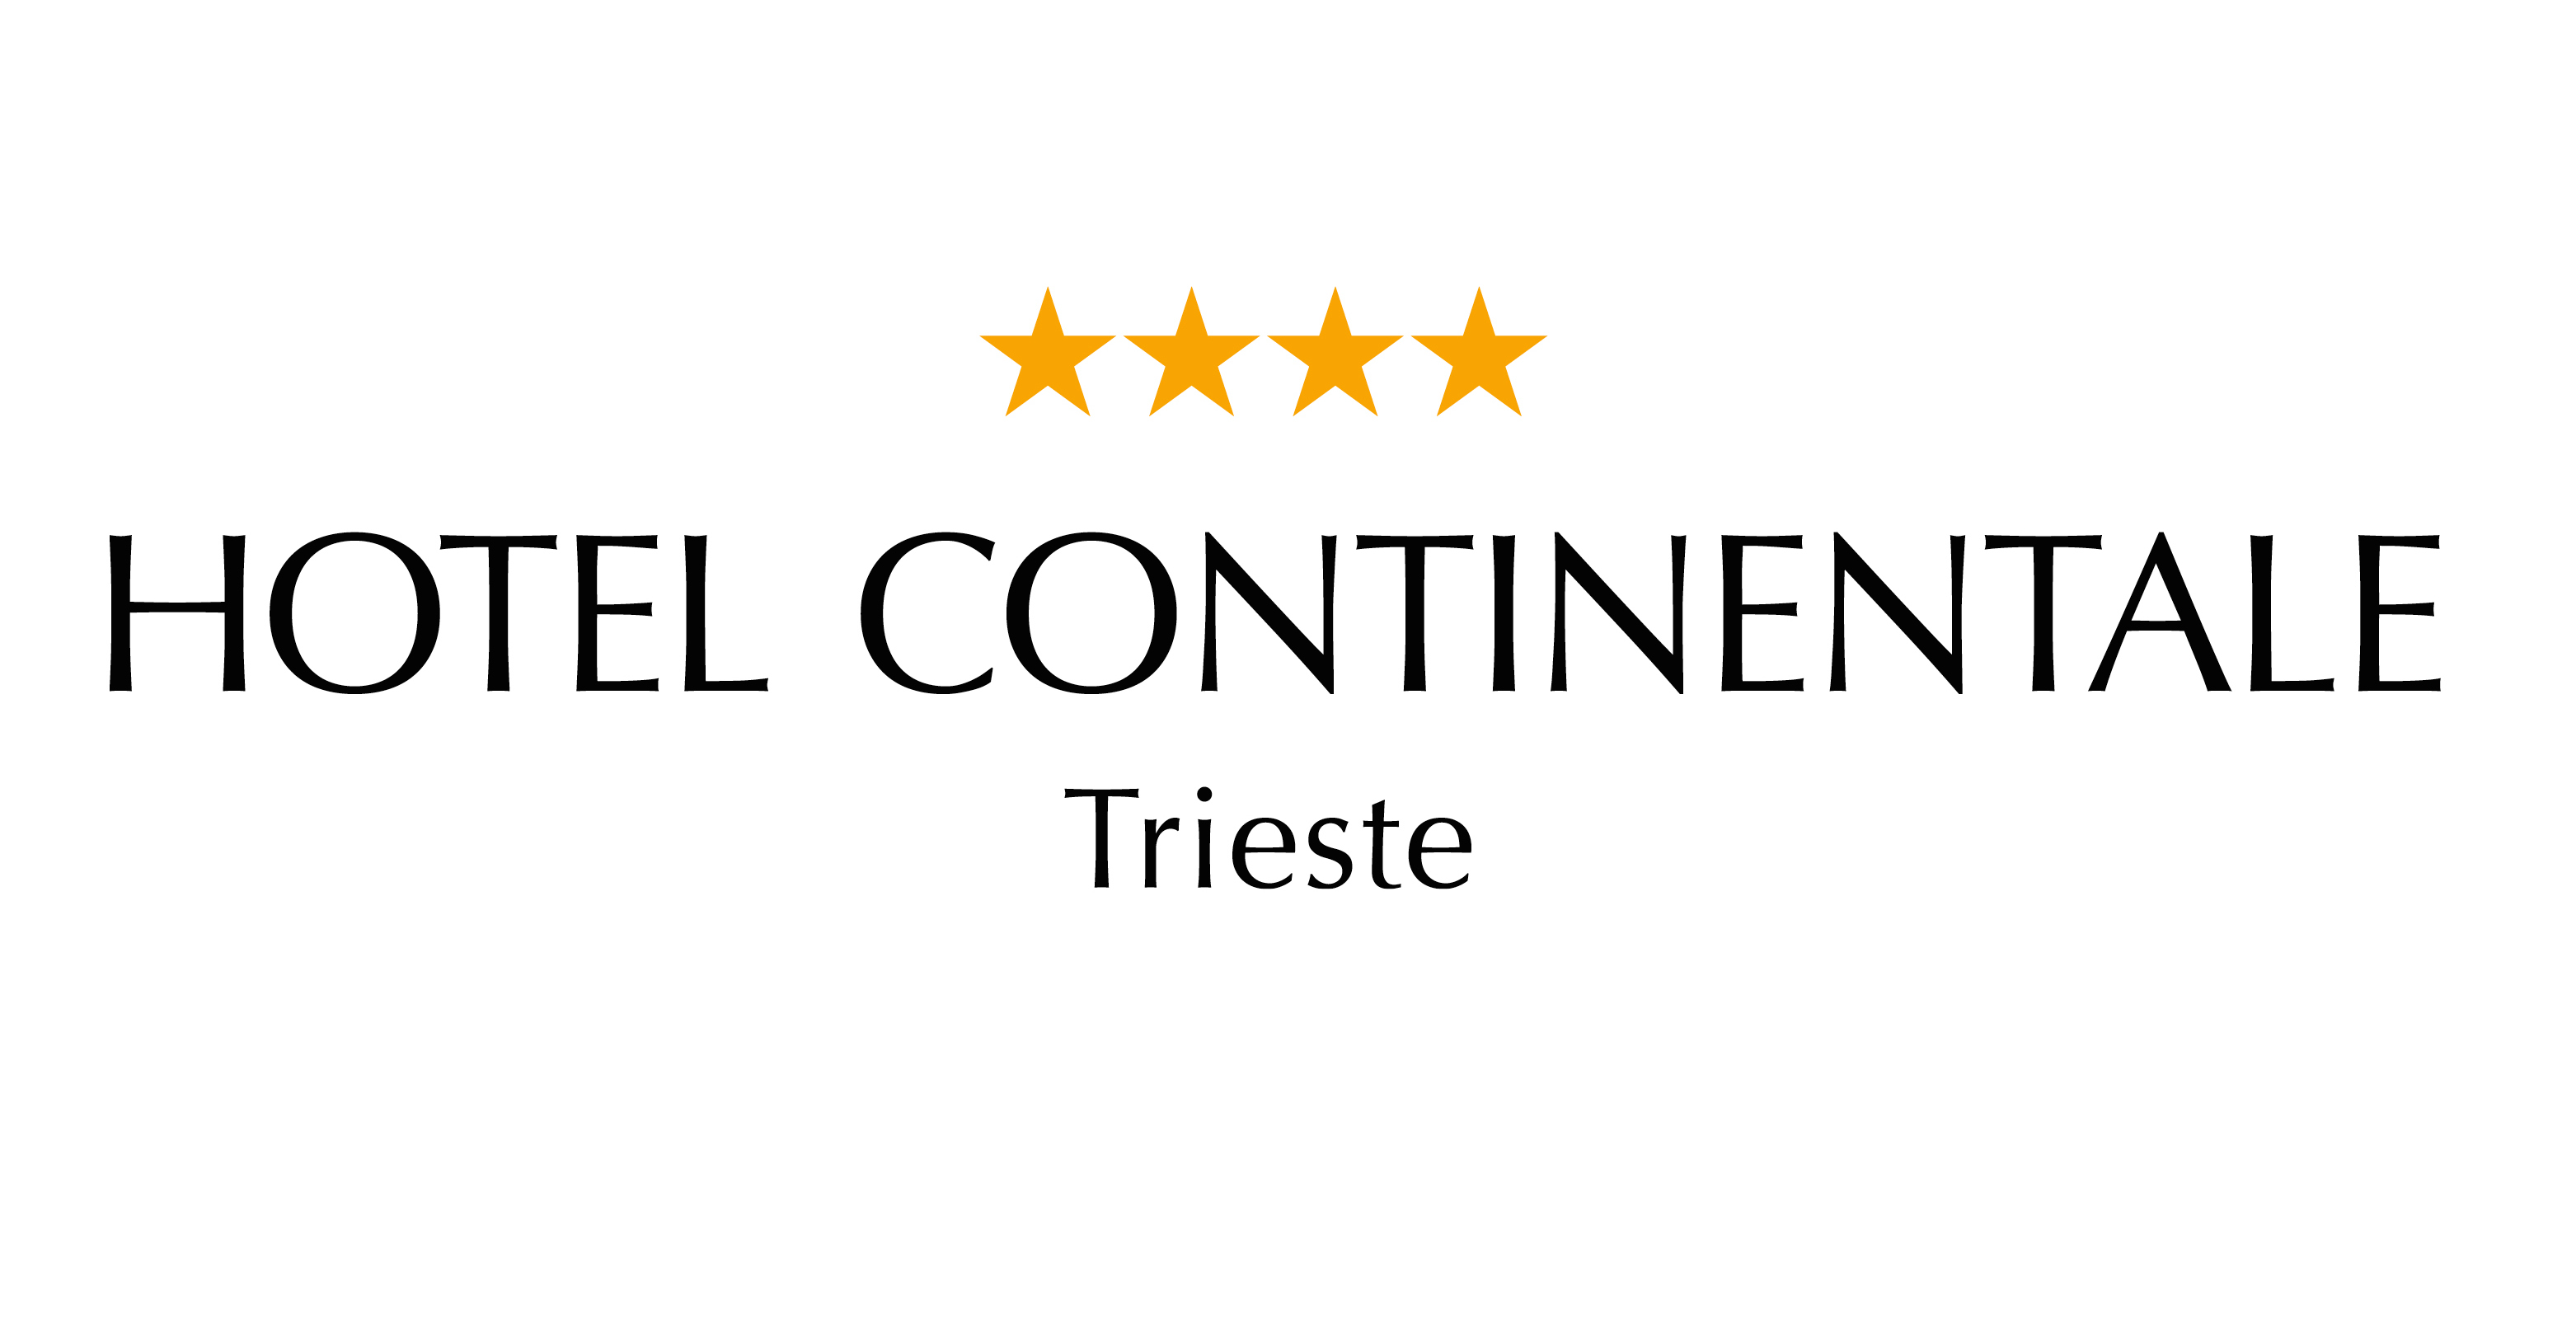 hotel continentale logo